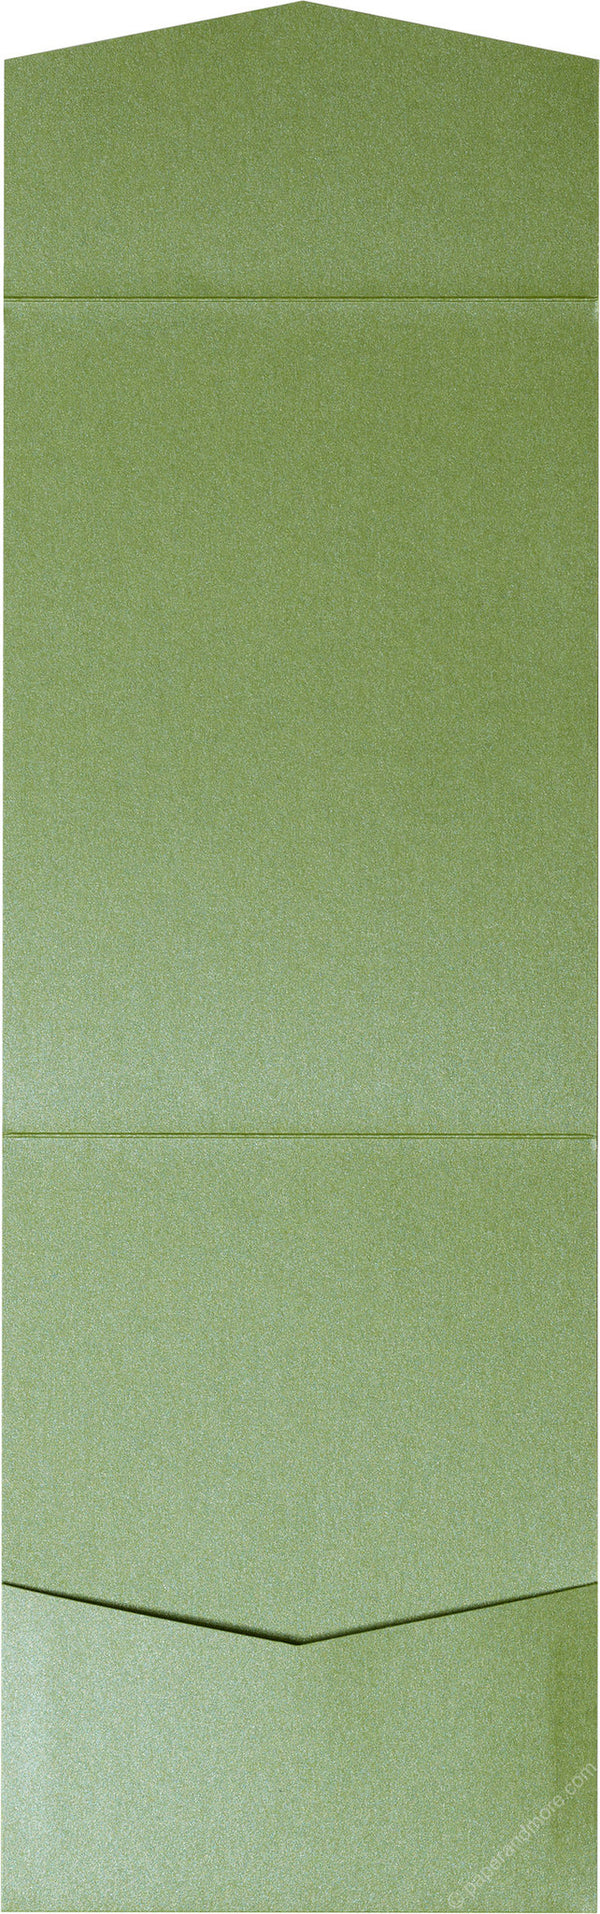 Green Fairway Metallic Pocket Invitation Card, A7 Cascade - Paperandmore.com